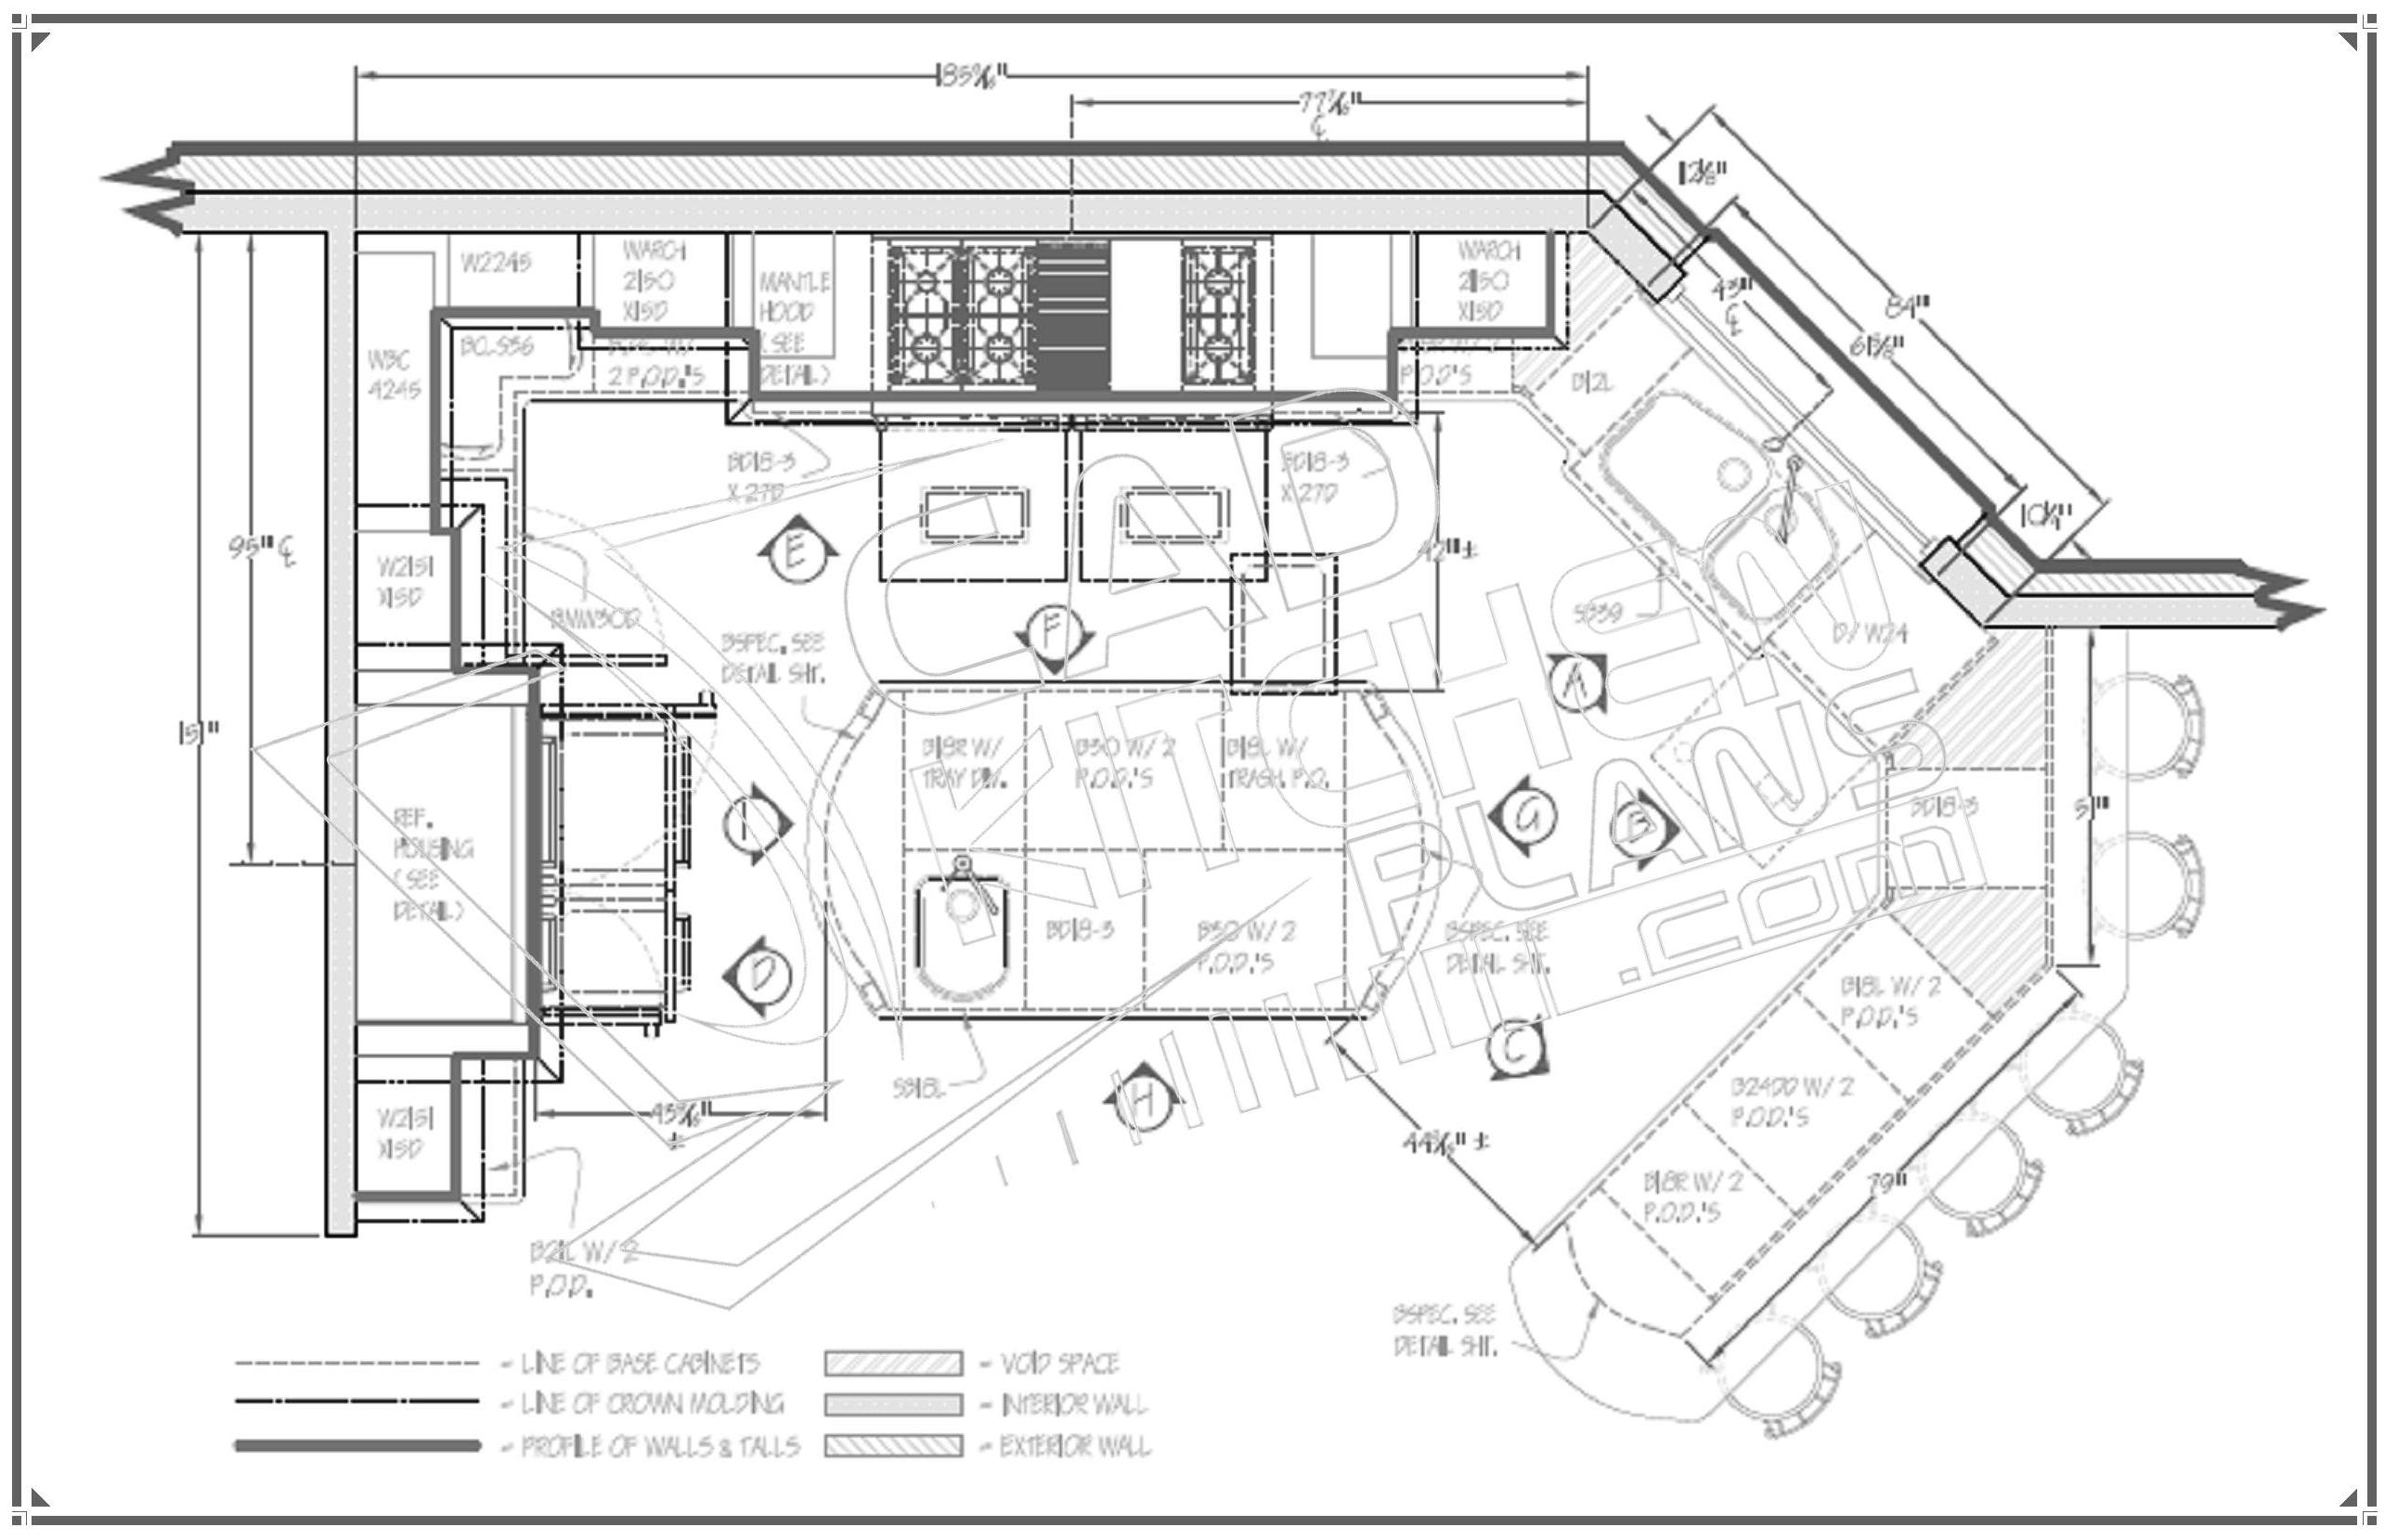 Restaurant kitchen plans design afreakatheart for Kitchen plan layout ideas